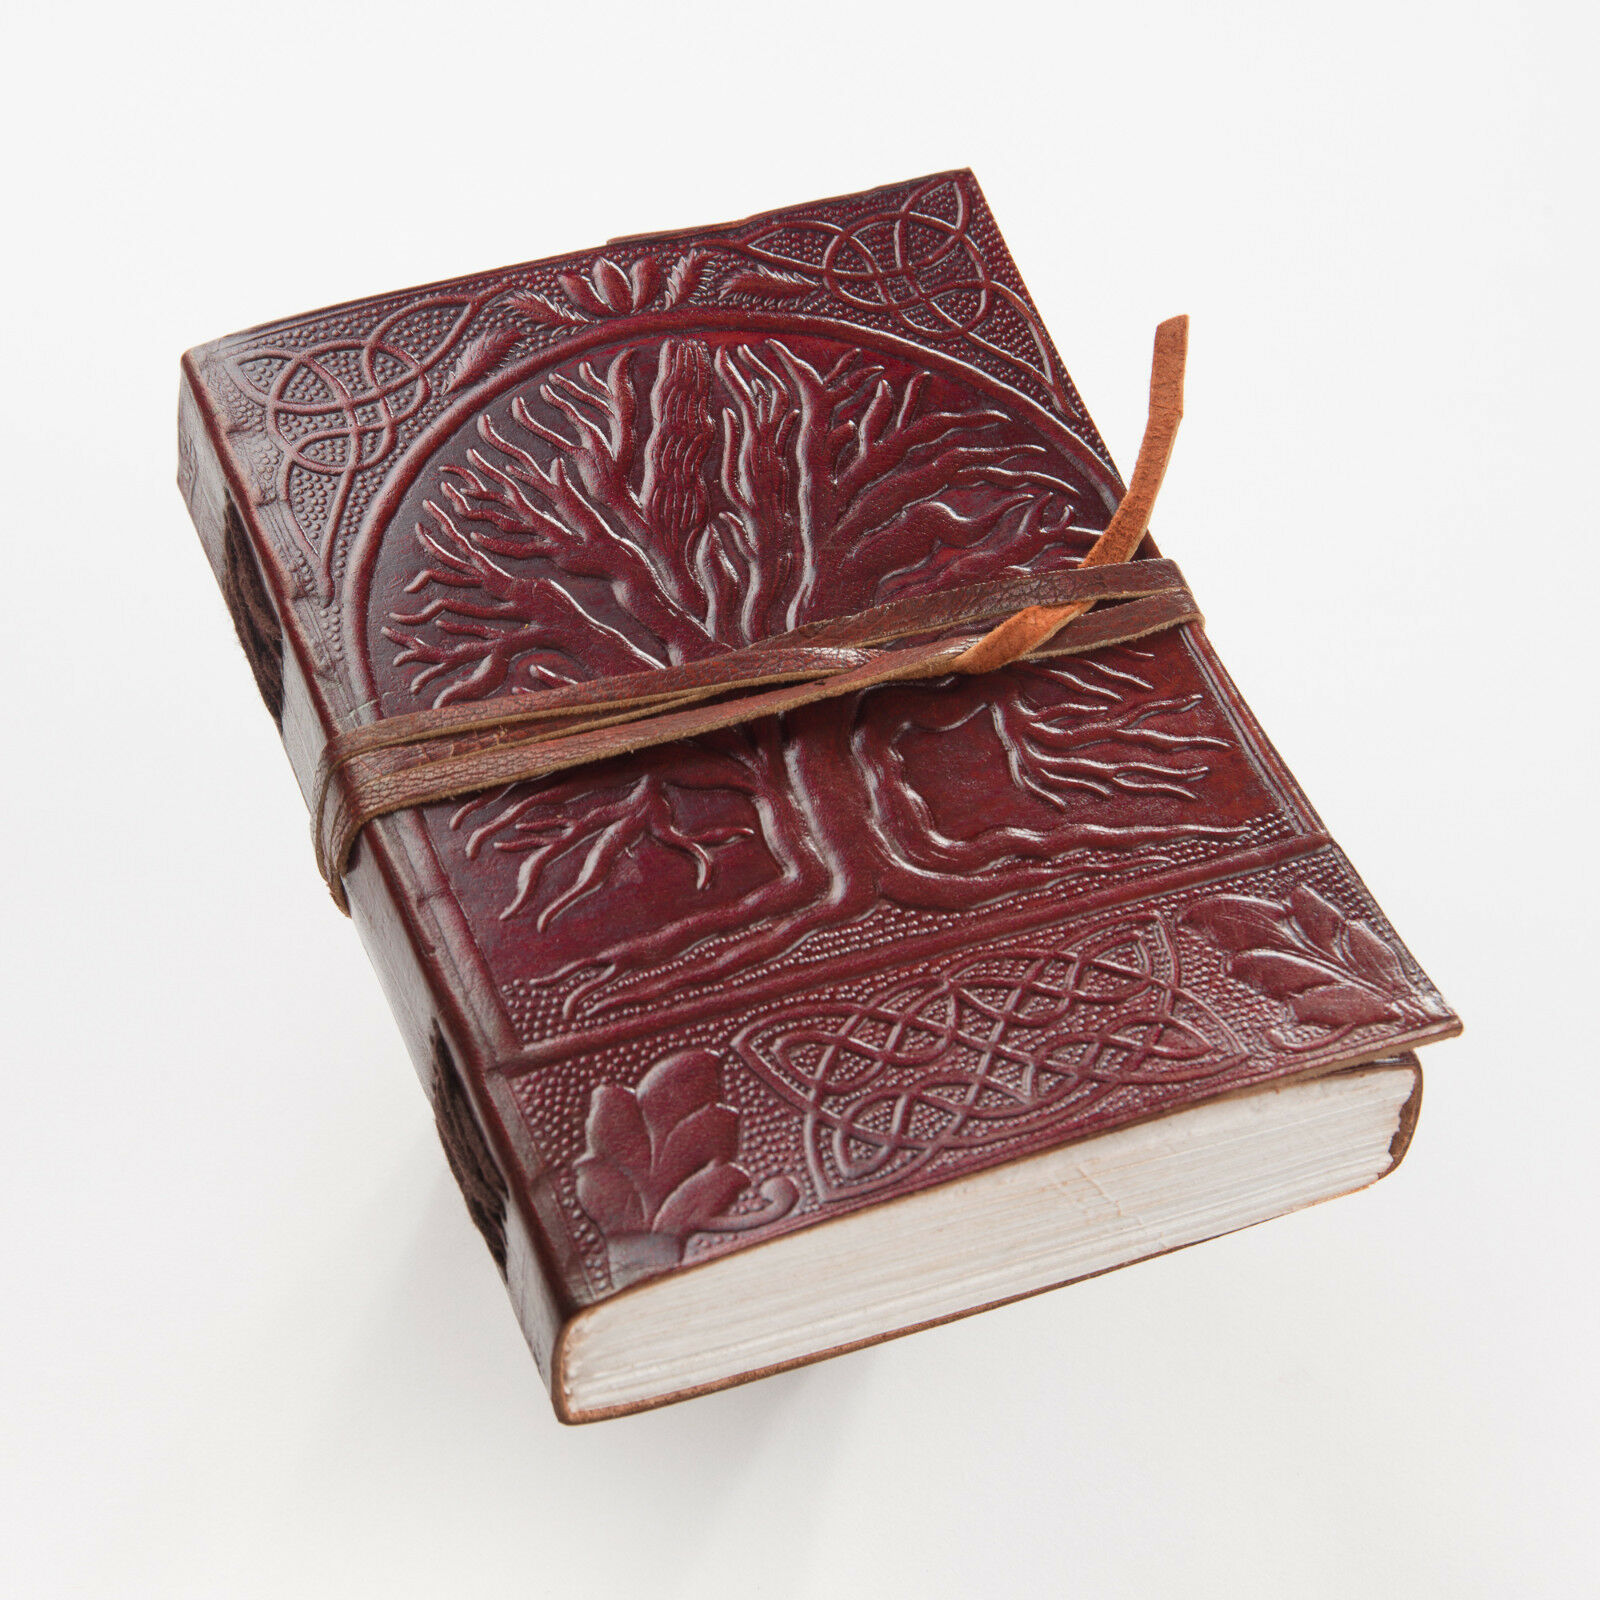 Tree of Life Leather Handmade Journal Diary Blank Book Notebook Writing JOURNAL 4